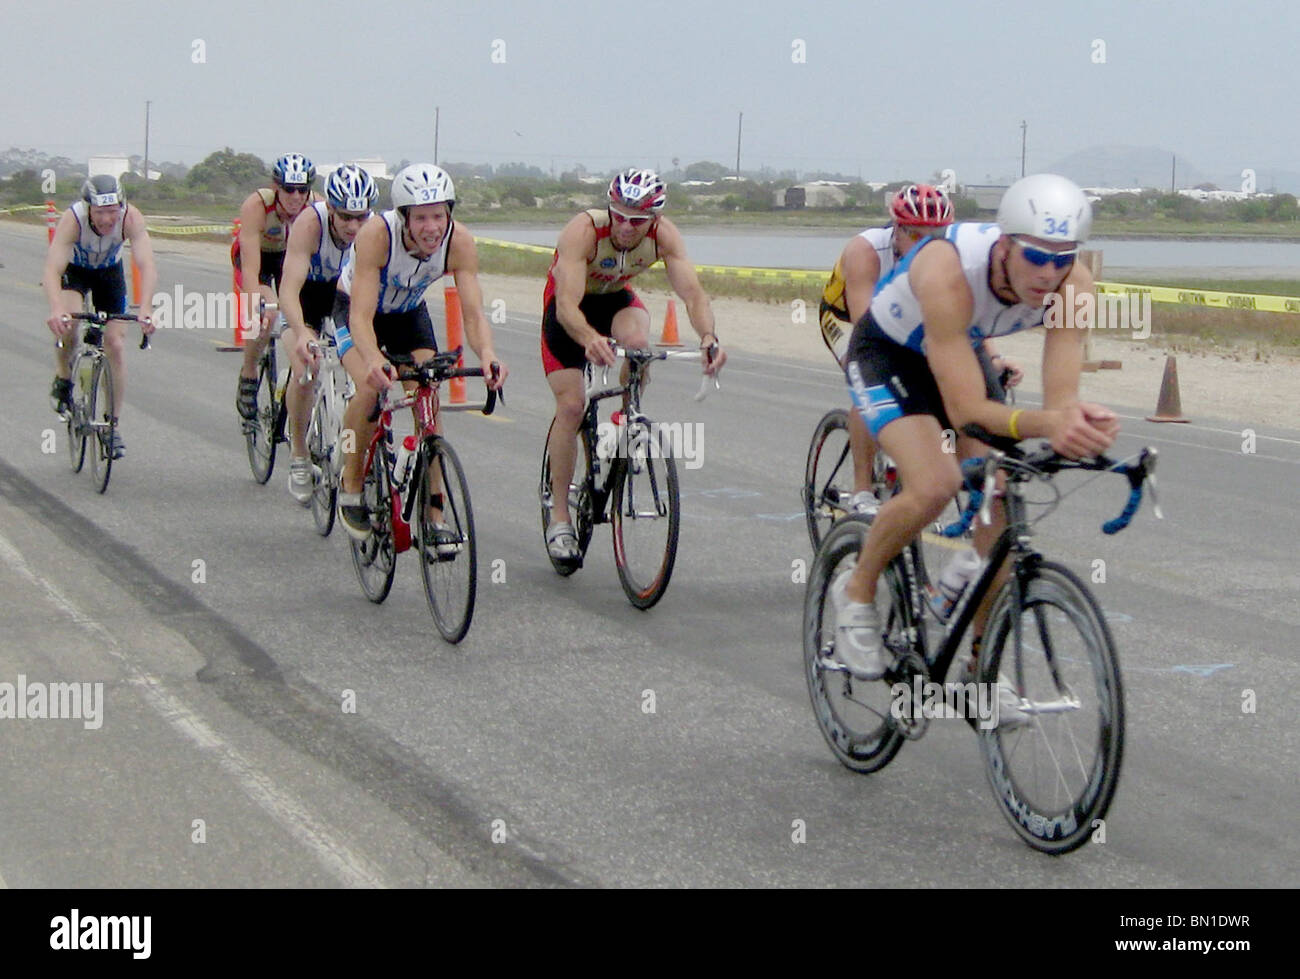 Maj. Jonathan Mason and 1st Lt. Scott Toander competed in the 2010 Armed Forces Triathlon Championship - Stock Image